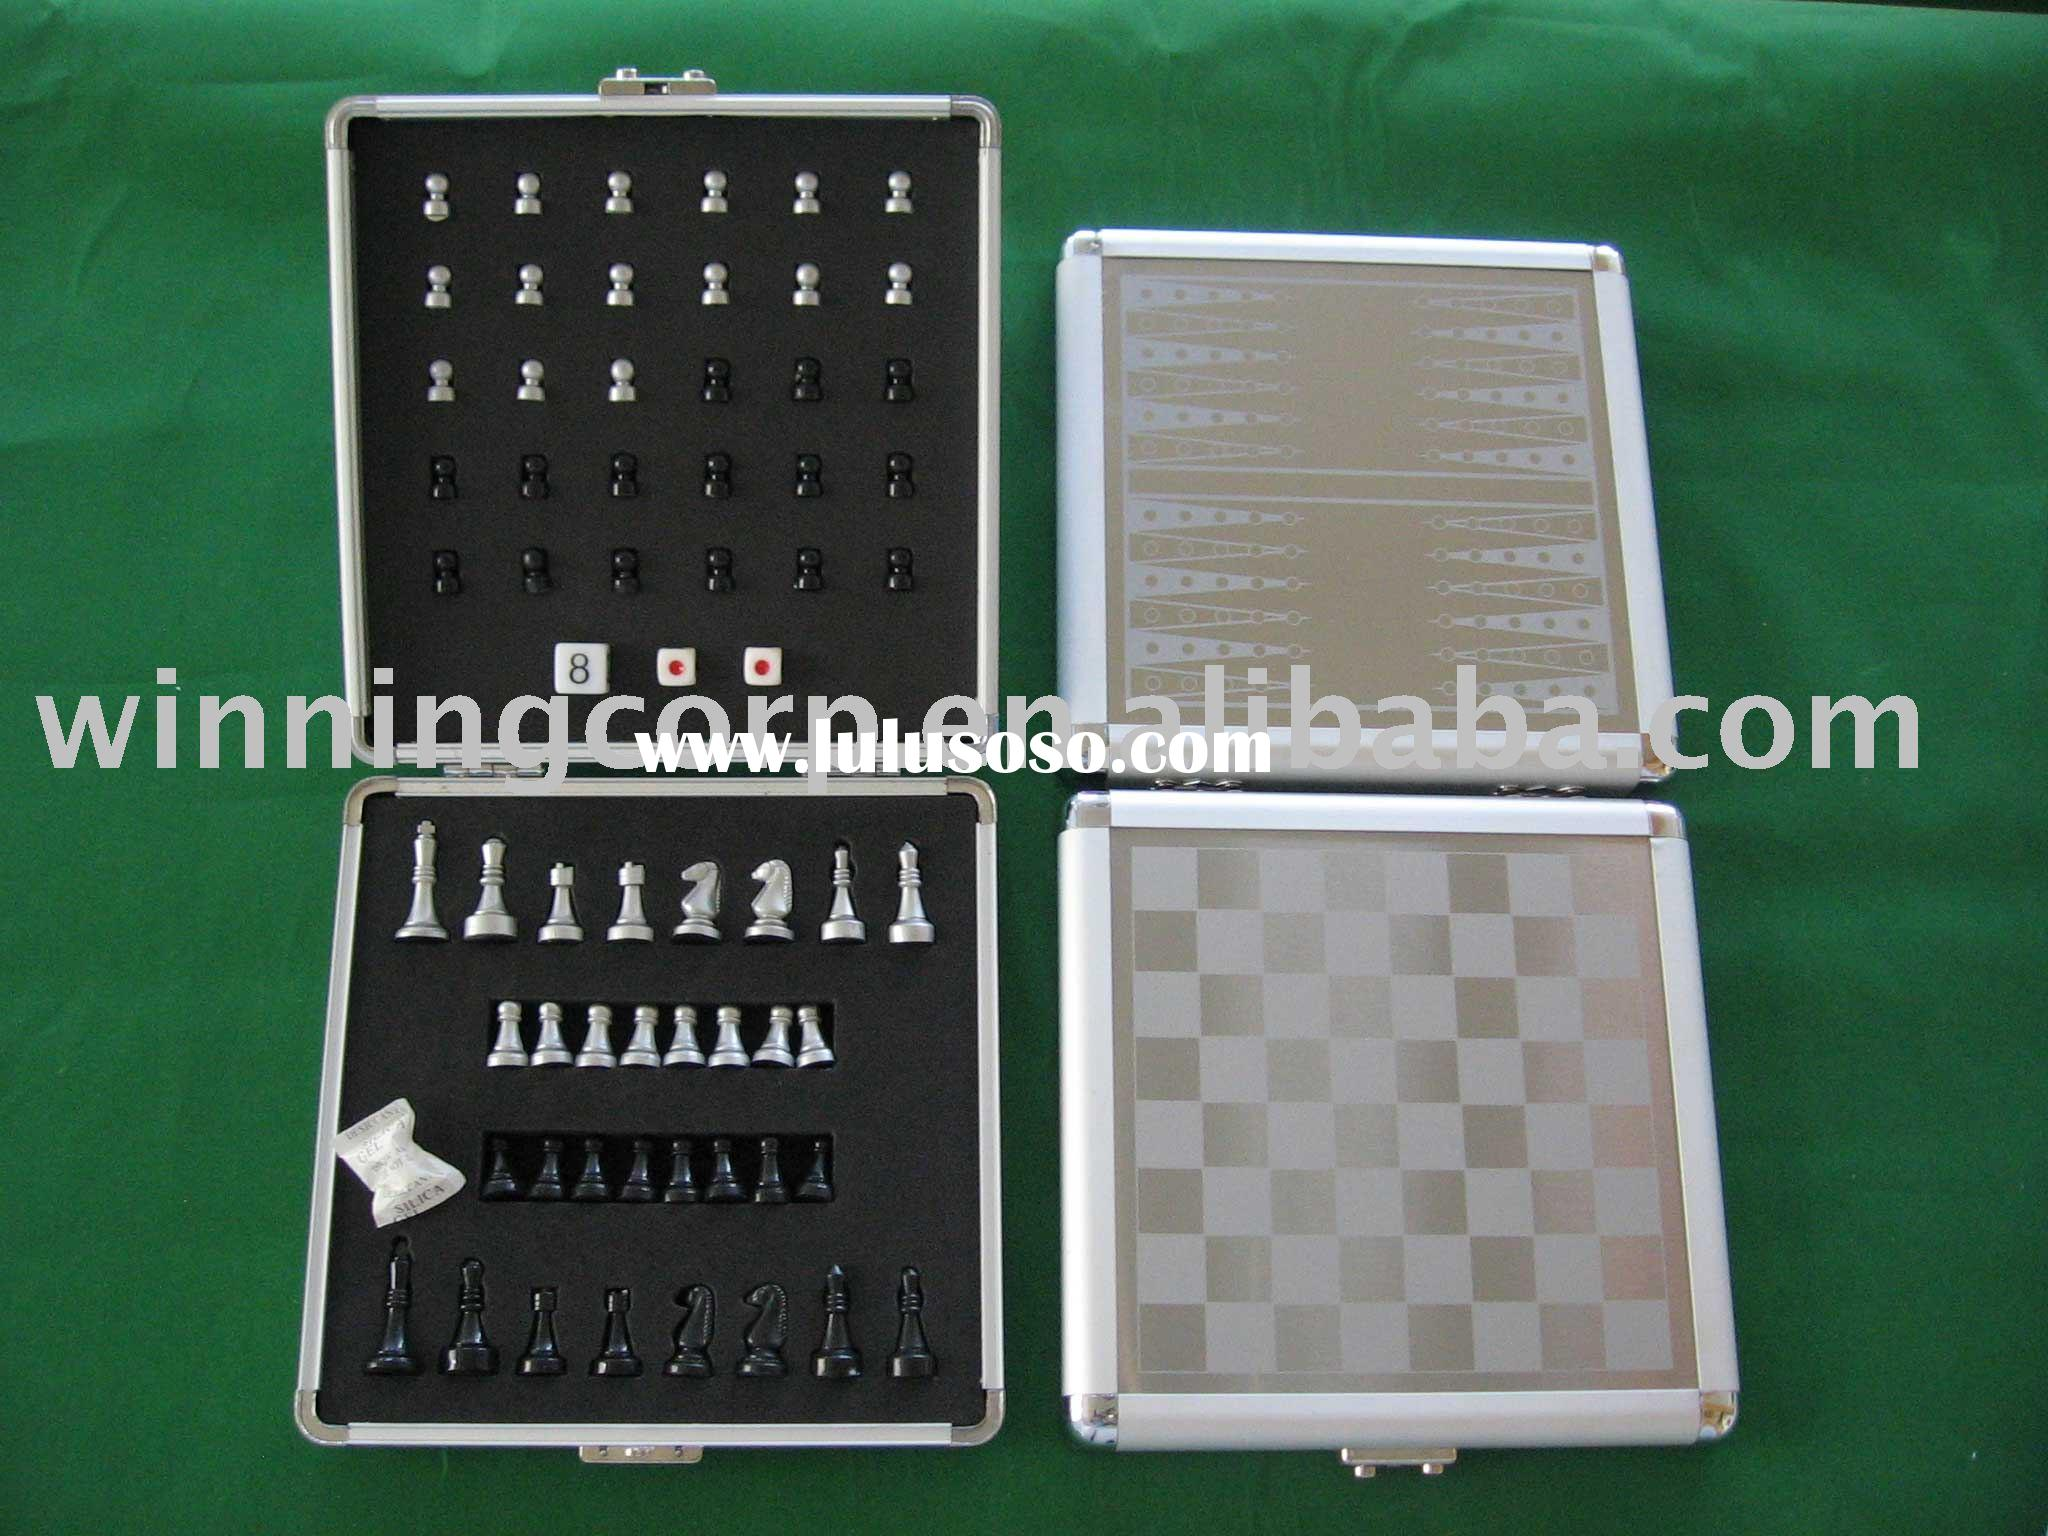 Travel game set,chess,backgammon game,Mill game,chess,ludo game,tic-tac-toe game,XO game,checker gam